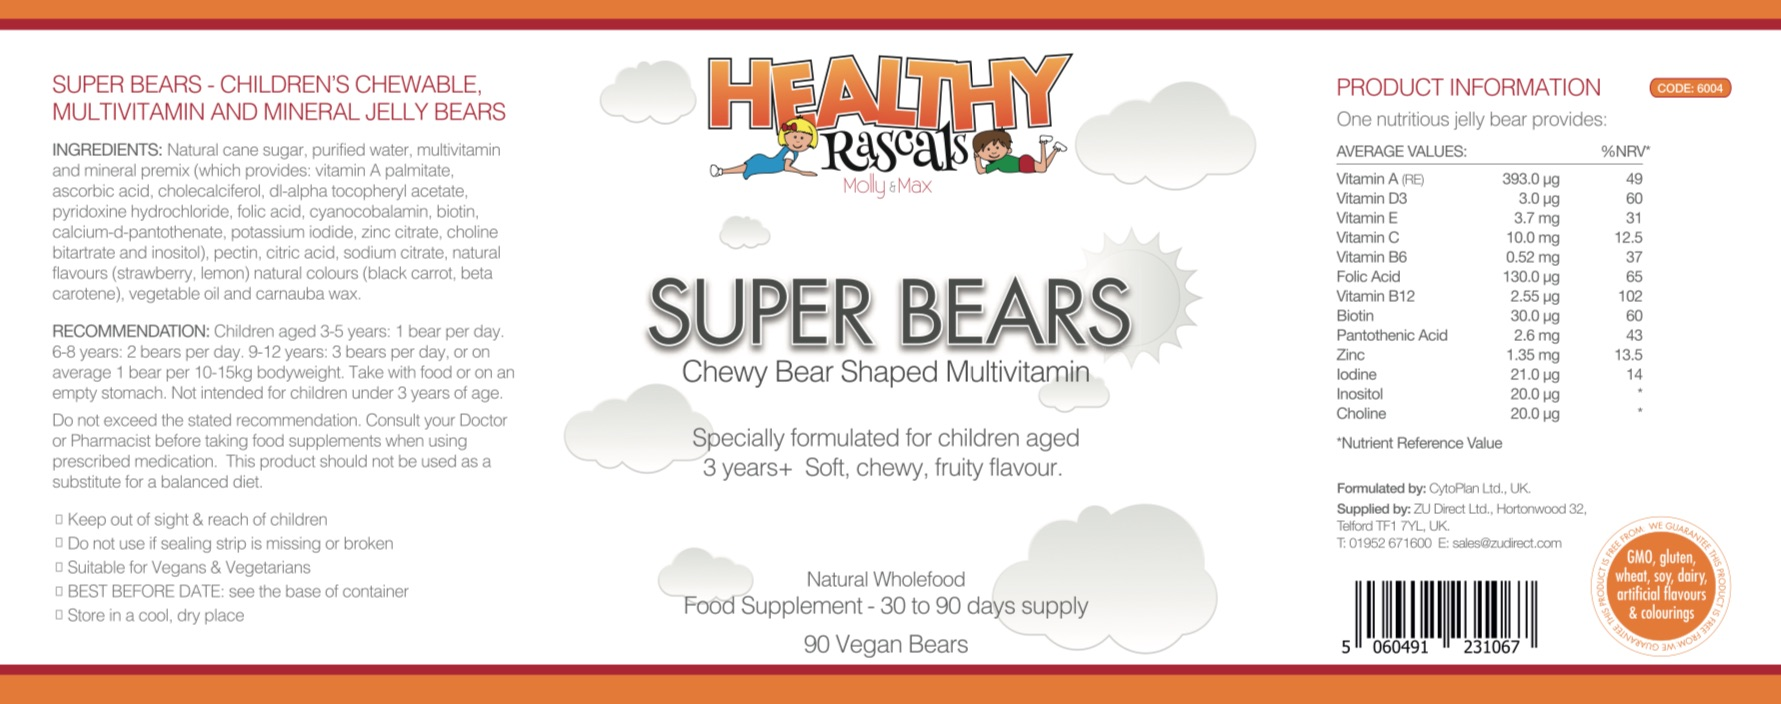 Healthy Rascals - Super Bears Label